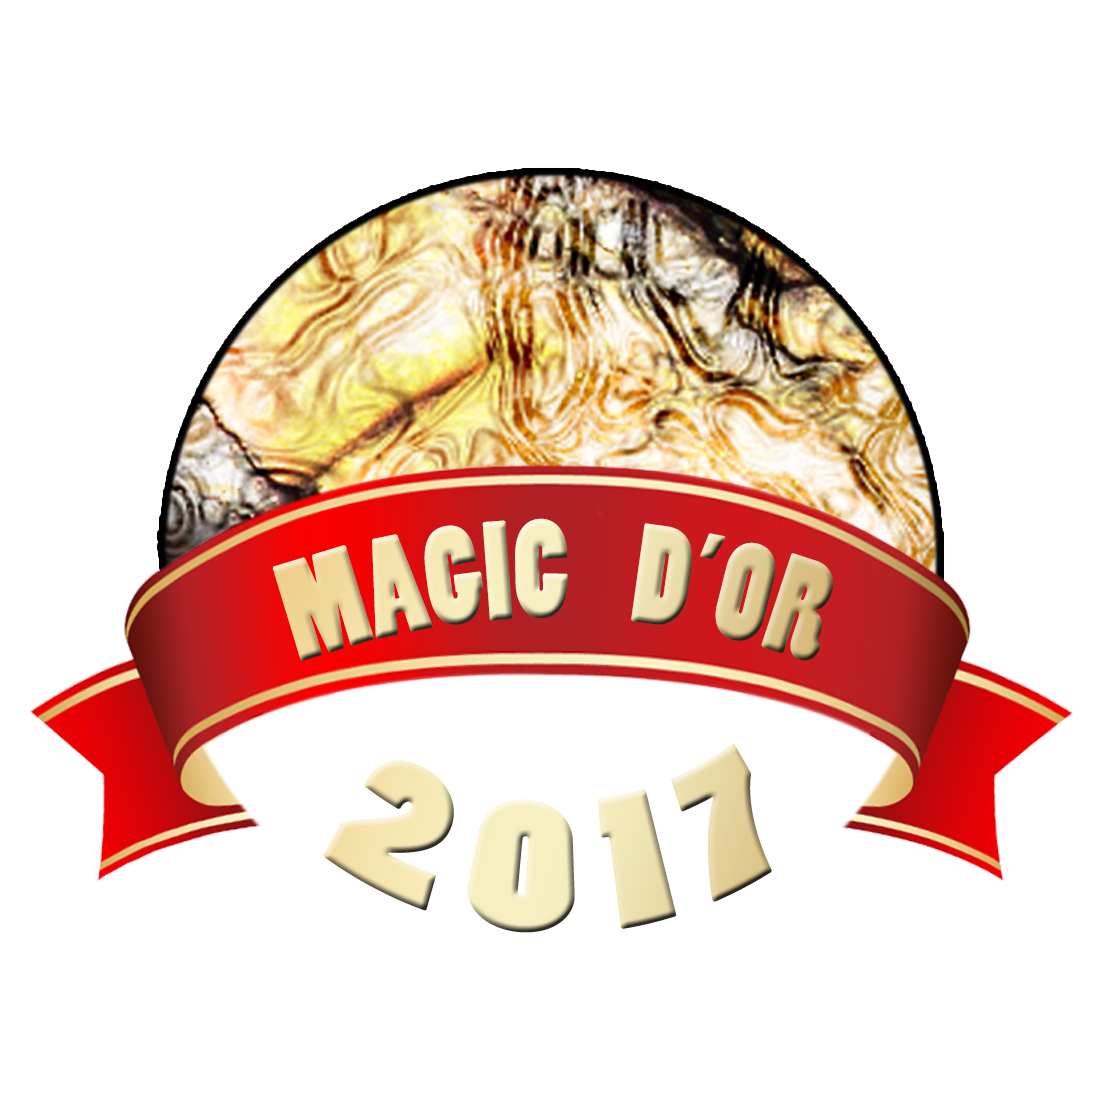 Magic Dor-2017-rouge.png